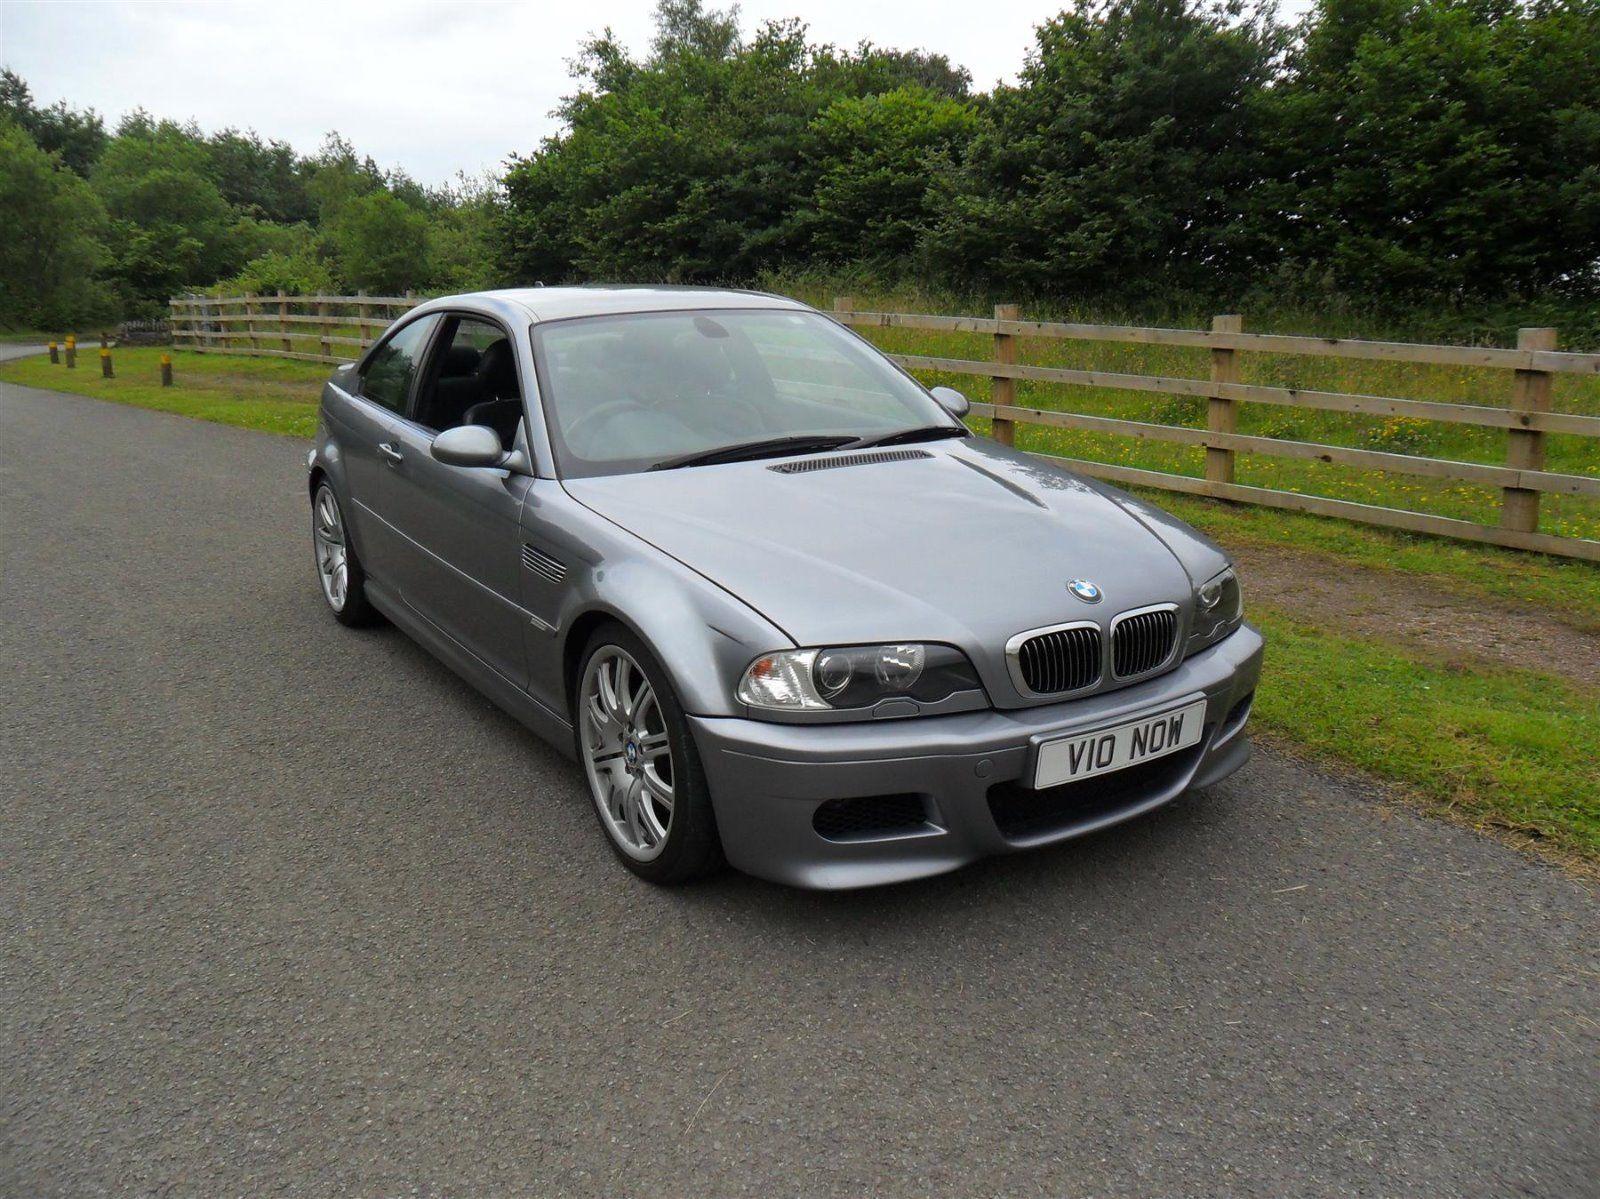 e46 bmw m3 with v10 engine for sale bmw car tuning. Black Bedroom Furniture Sets. Home Design Ideas